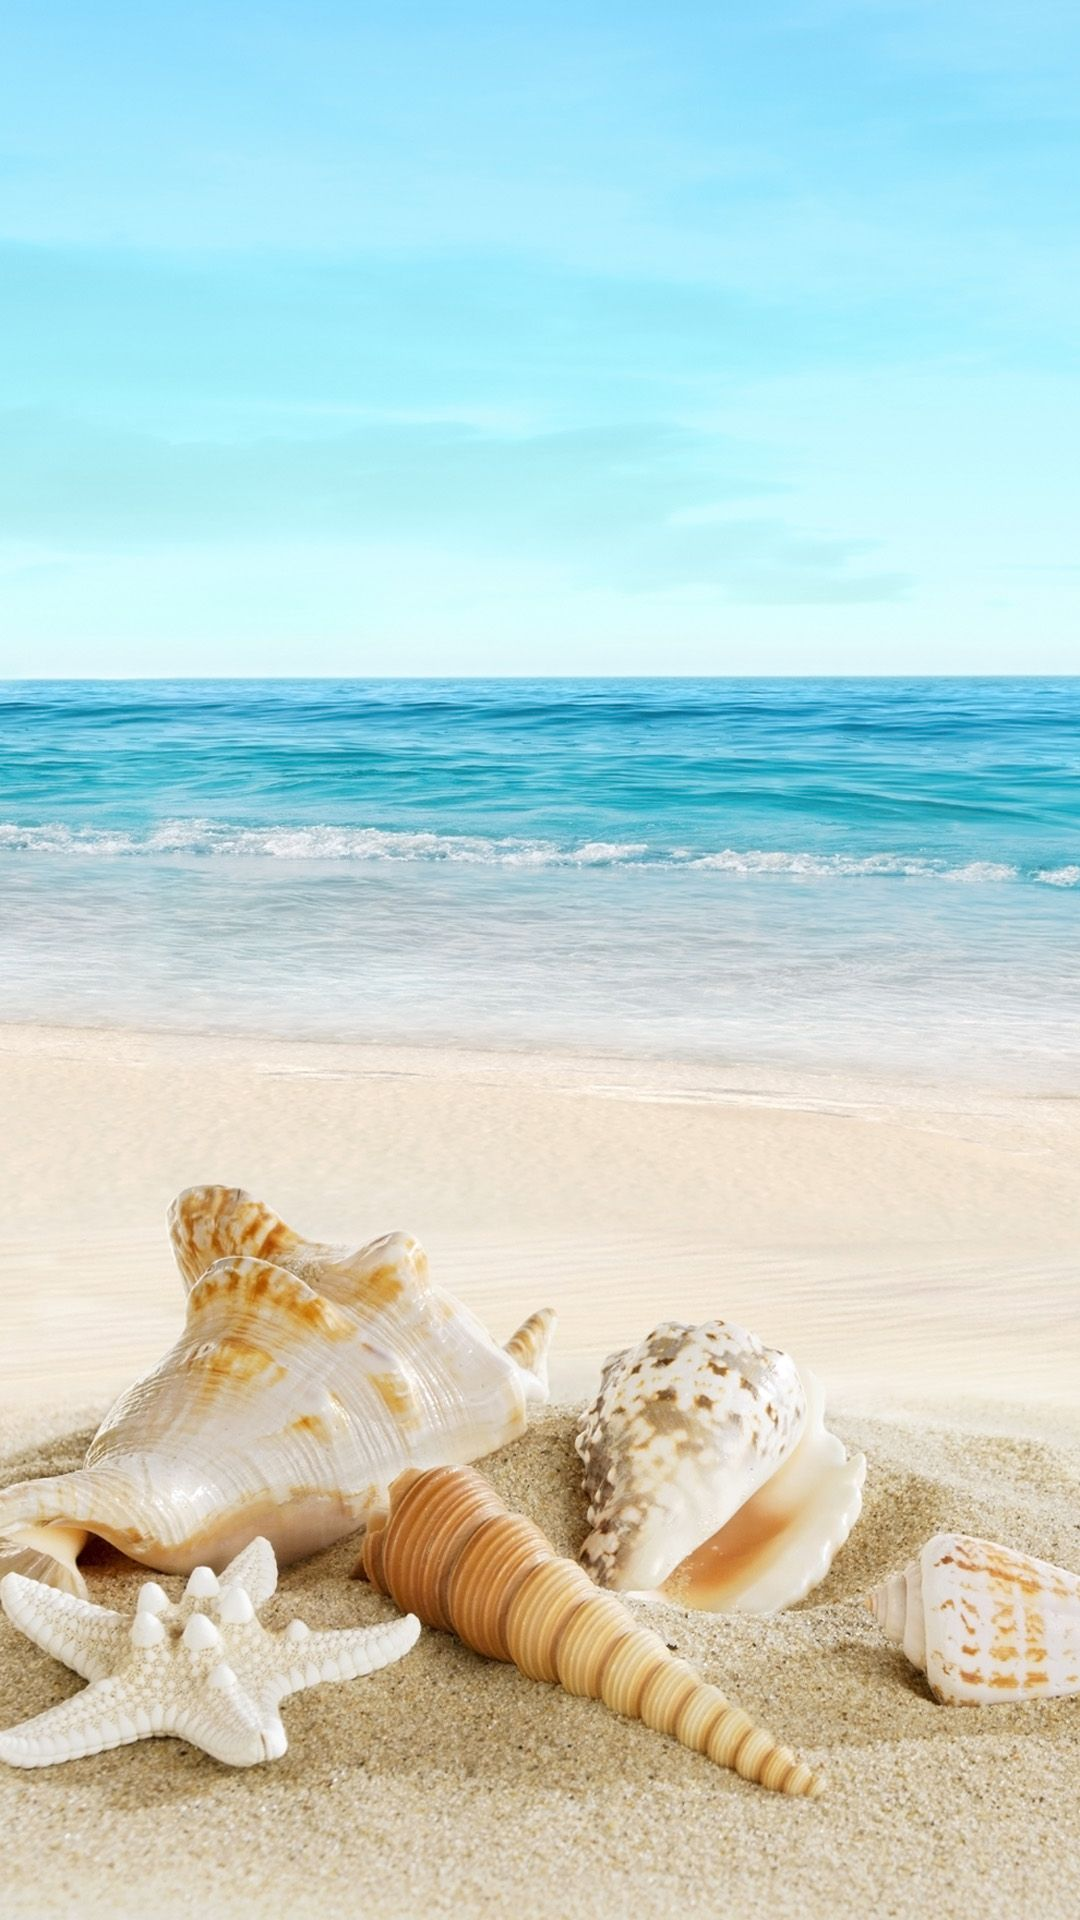 Nature Sunny Sea Shell Beach iPhone 6 wallpaper Color